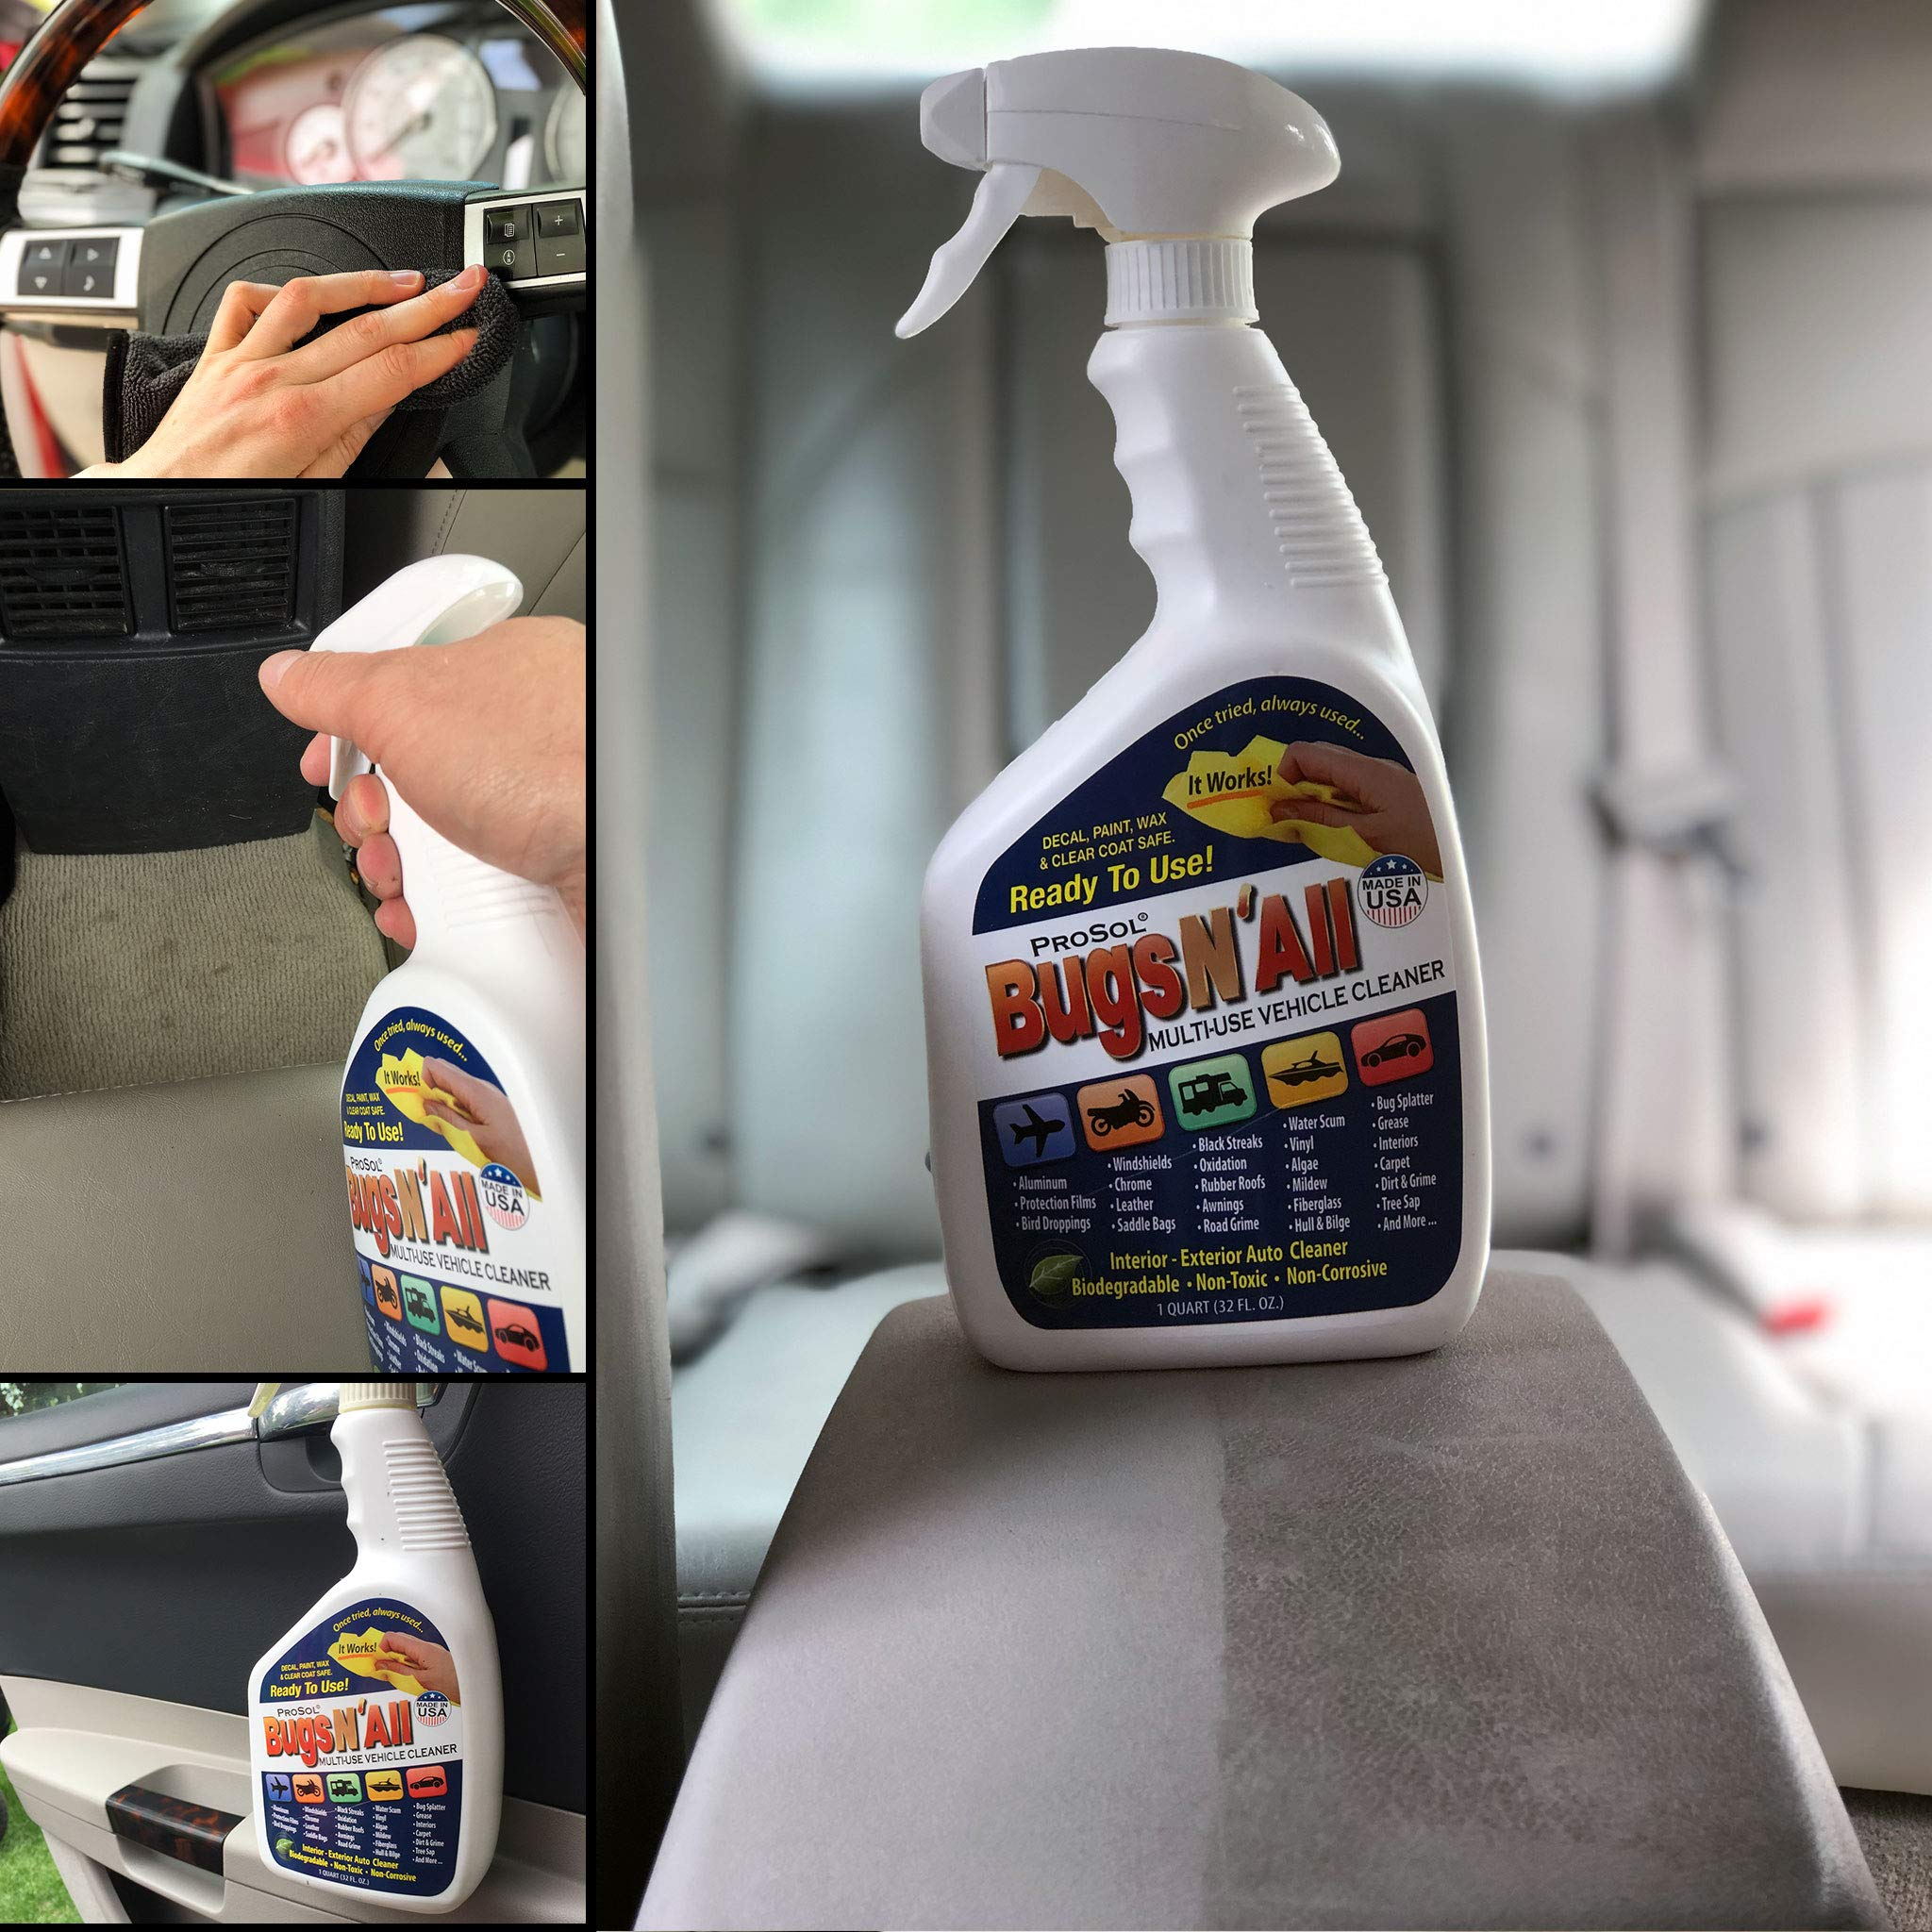 Bugs N All - Multi-Surface Vehicle Cleaner/Bug Remover. 1qt. Concentrate Makes 8 Quarts. Includes an Empty 1 Qt. Spray Bottle - Safe on Wax, Clear Coat, Paint, Decals and on All Surfaces. by ProSol (Image #5)